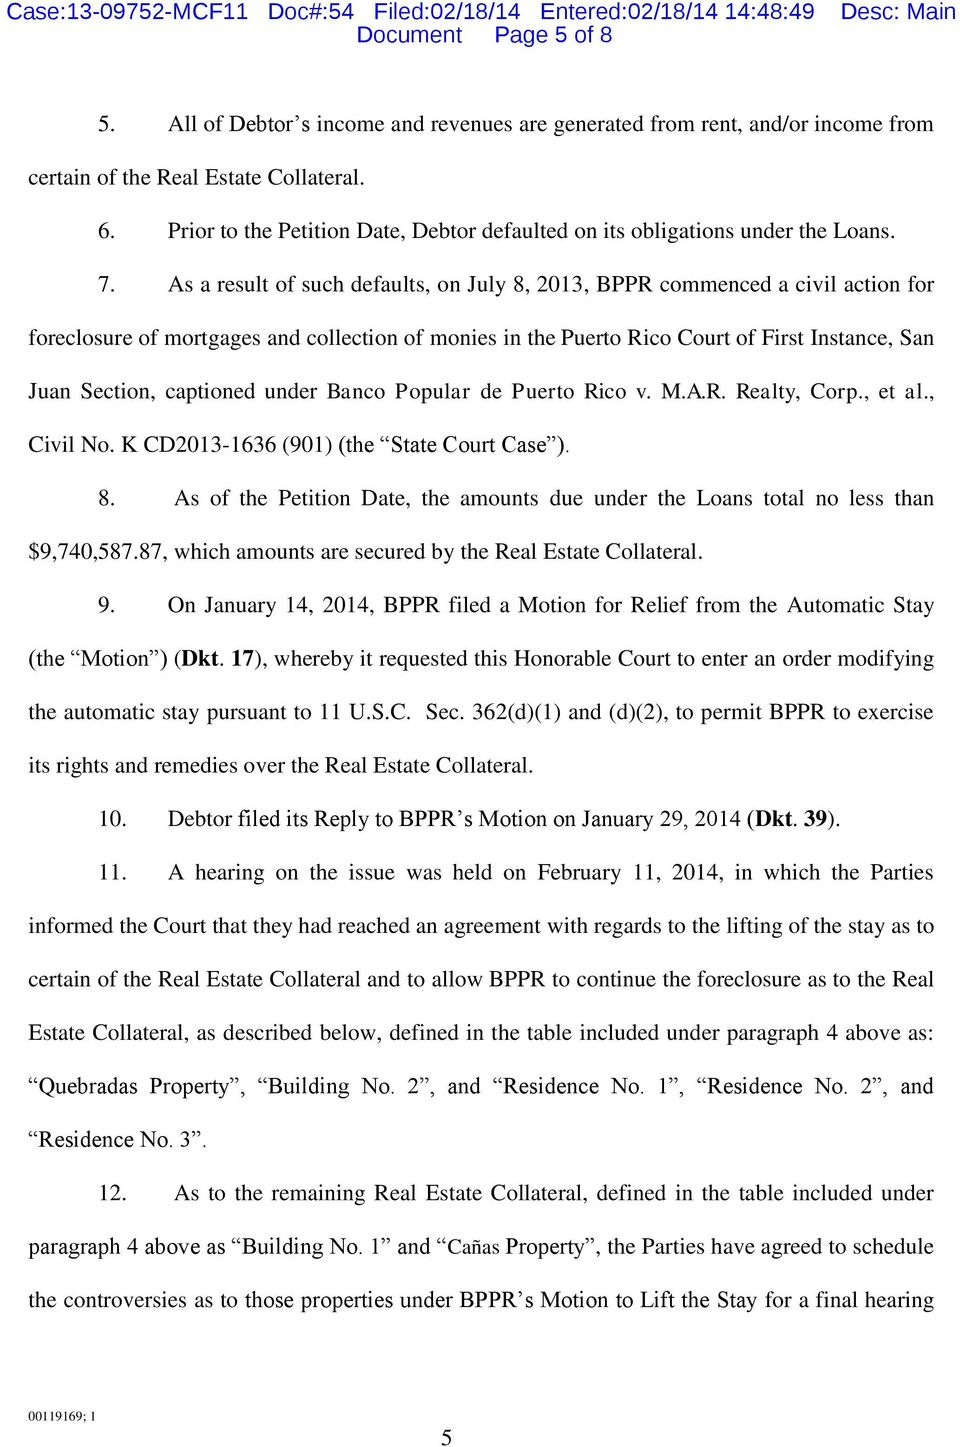 As a result of such defaults, on July 8, 2013, BPPR commenced a civil action for foreclosure of mortgages and collection of monies in the Puerto Rico Court of First Instance, San Juan Section,